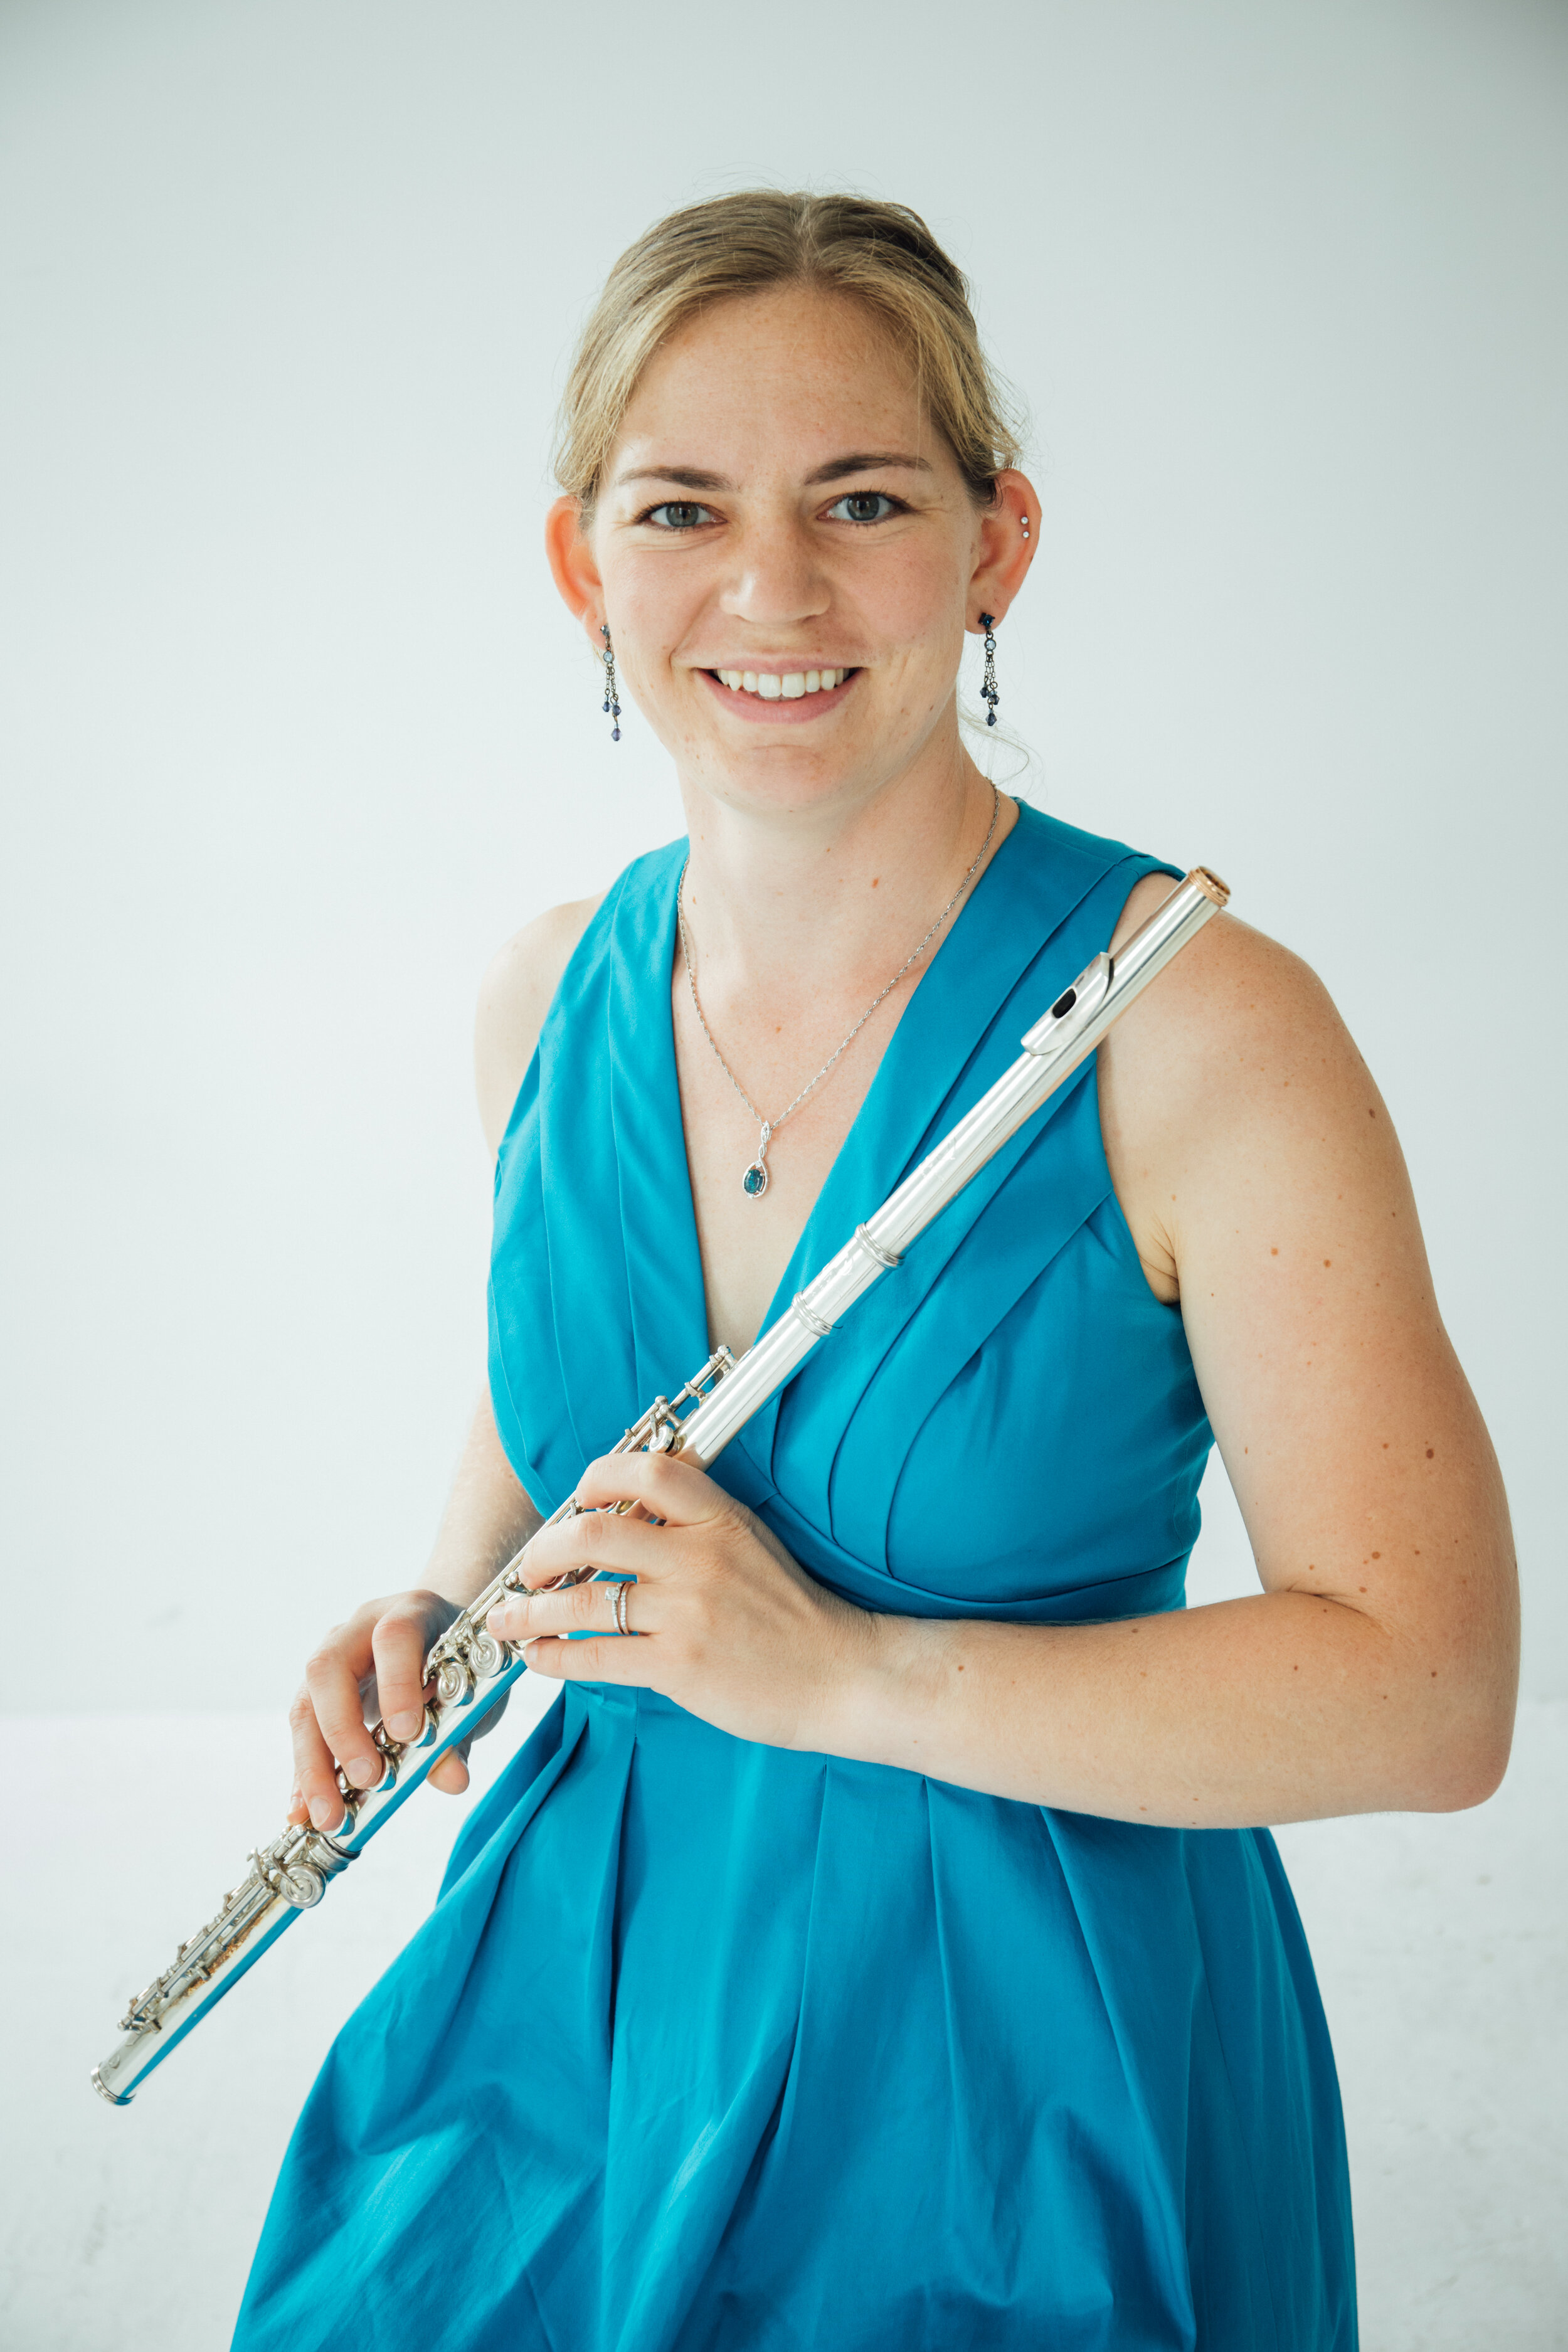 Cassie Lear, flutes - Cassie Lear is a performer and teacher based in Seattle, WA. She is a past first place winner of the Seattle Flute Society Young Artist Competition, the Maverick Flute Competition, and an alternate winner of the Francis Walton Solo Competition, as well as winning an Audience Choice award at the LaTex Electronic Music Festival. Cassie performs and subs with groups in and around the Seattle area, including Seattle Metropolitan Chamber Orchestra, the SoundEdge Orchestra, and Puget Sound Strings, and has also performed at the National Flute Association Annual Conference, the International Computer Music Conference, the Oregon Bach Festival, the International Lyric Academy in Italy, nief norf Summer Festival, and has been featured on the soundtrack of two short films, several plays, and one feature-length horror film.Most recently Cassie spent the summer in Kolkata, India, working with both the Kolkata Symphony and performing in outreach concerts bringing Western classical music performances to children who wouldn't normally get to hear them. While in India she performed the Godard Valse with the Kolkata Symphony.